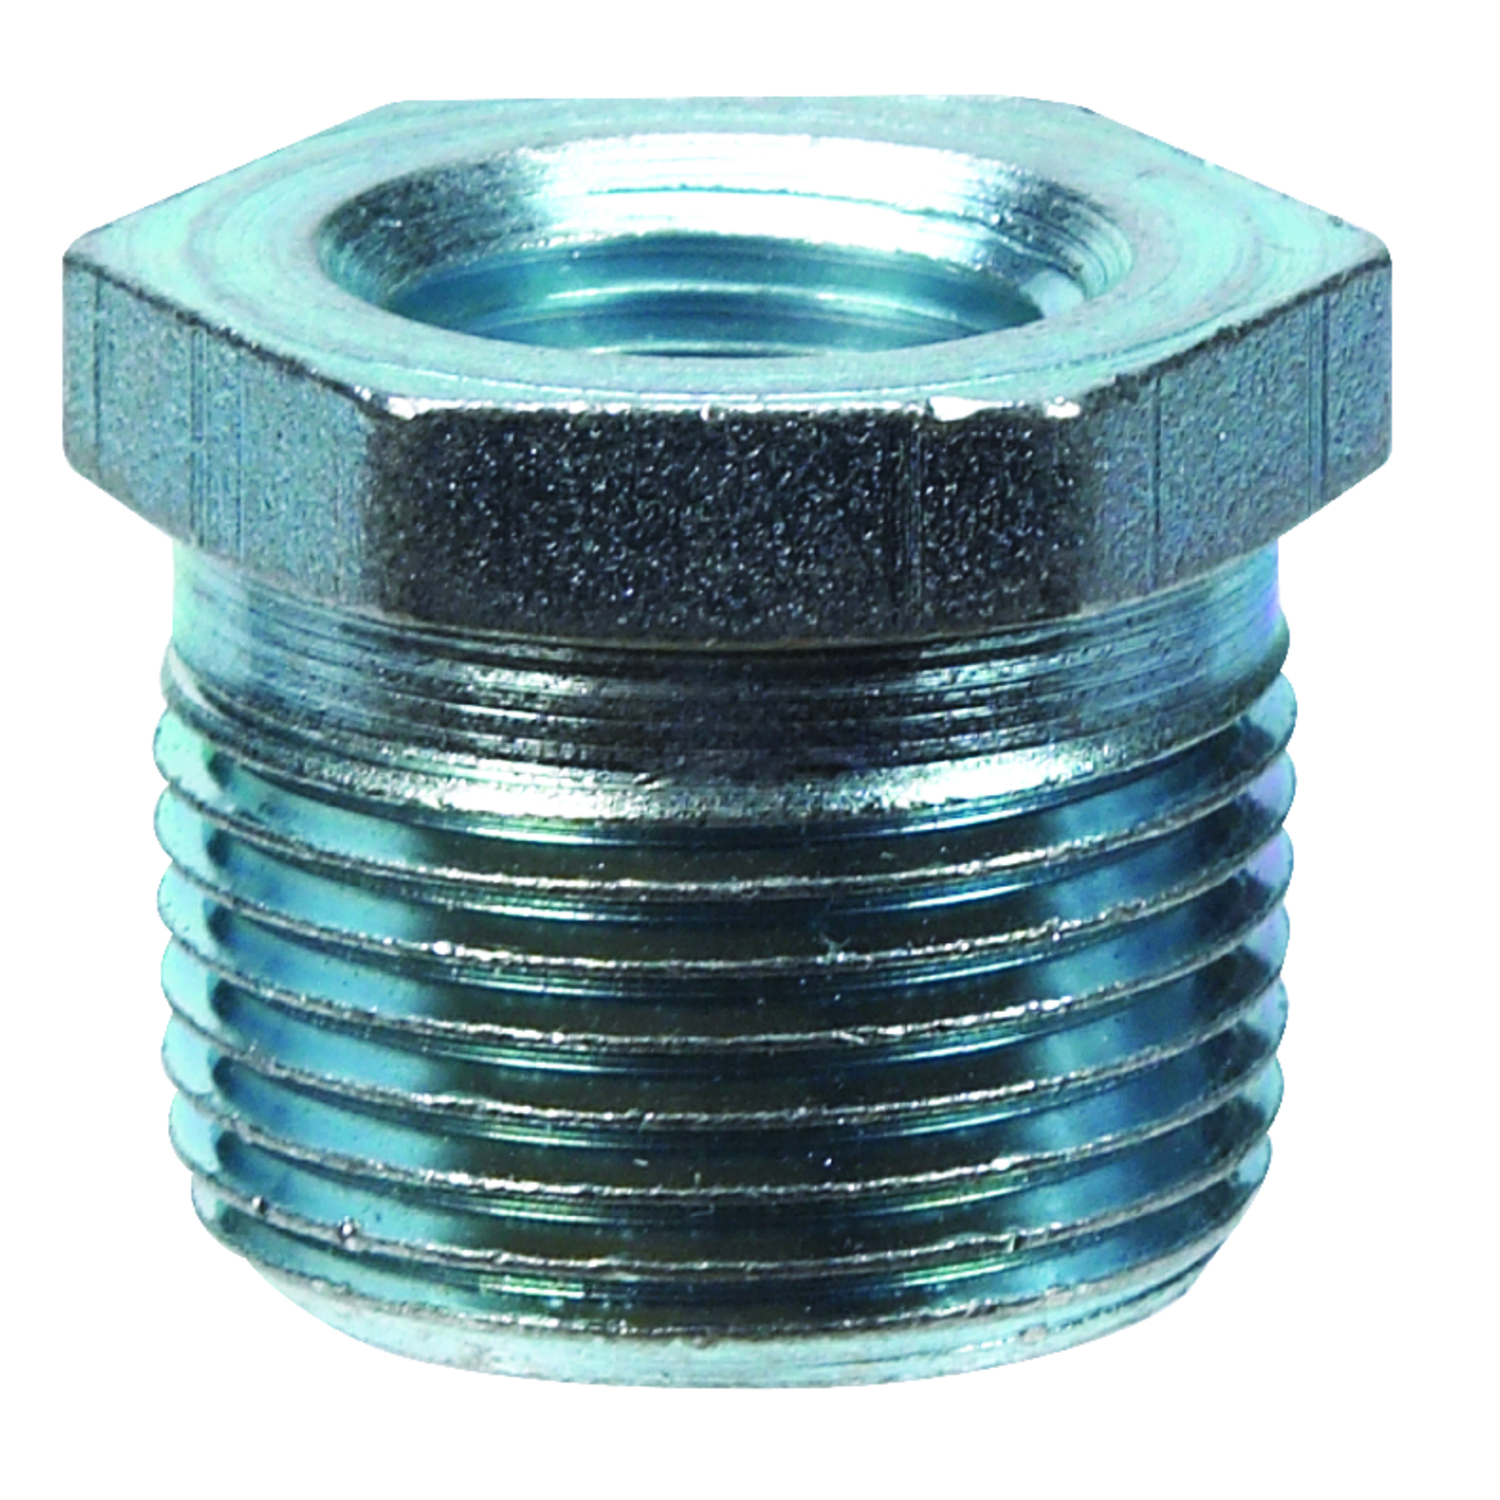 Billco  1/4 in. MPT  1/8 in. Dia. MPT  Galvanized  Galvanized Steel  Hex Bushing